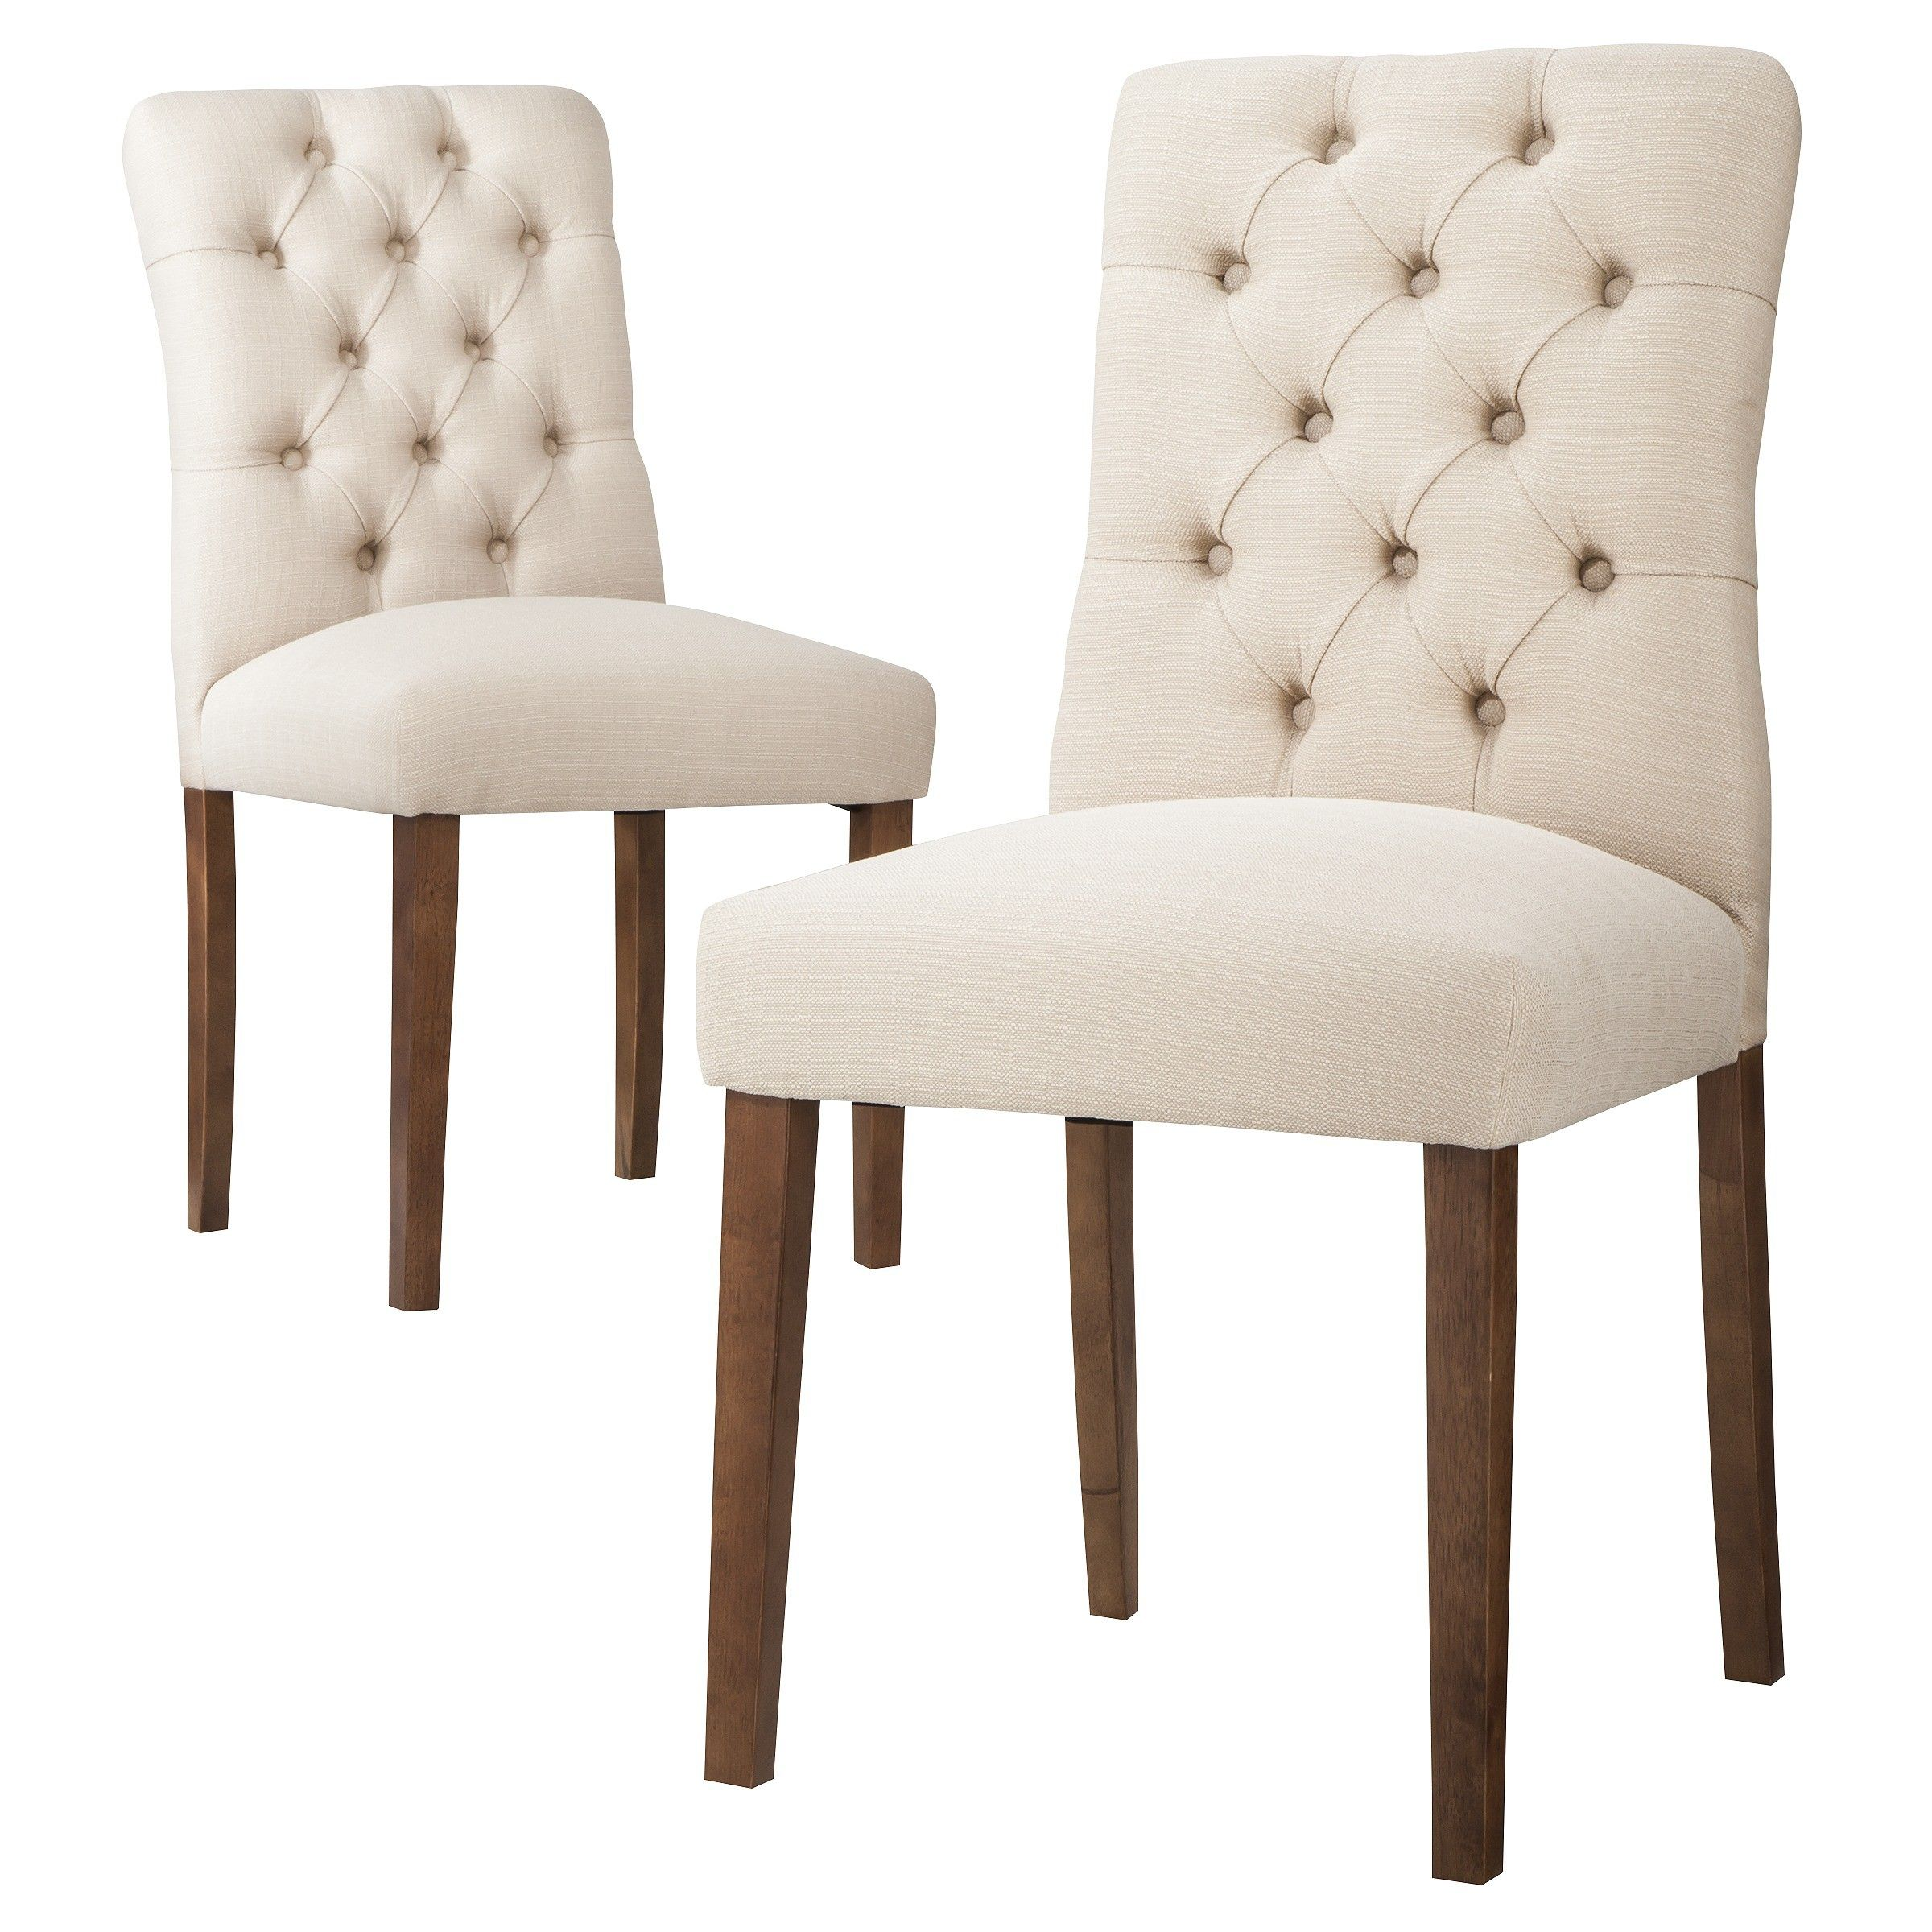 dining chairs set of 4 target sheepskin chair covers canada 120 threshold brookline tufted 2